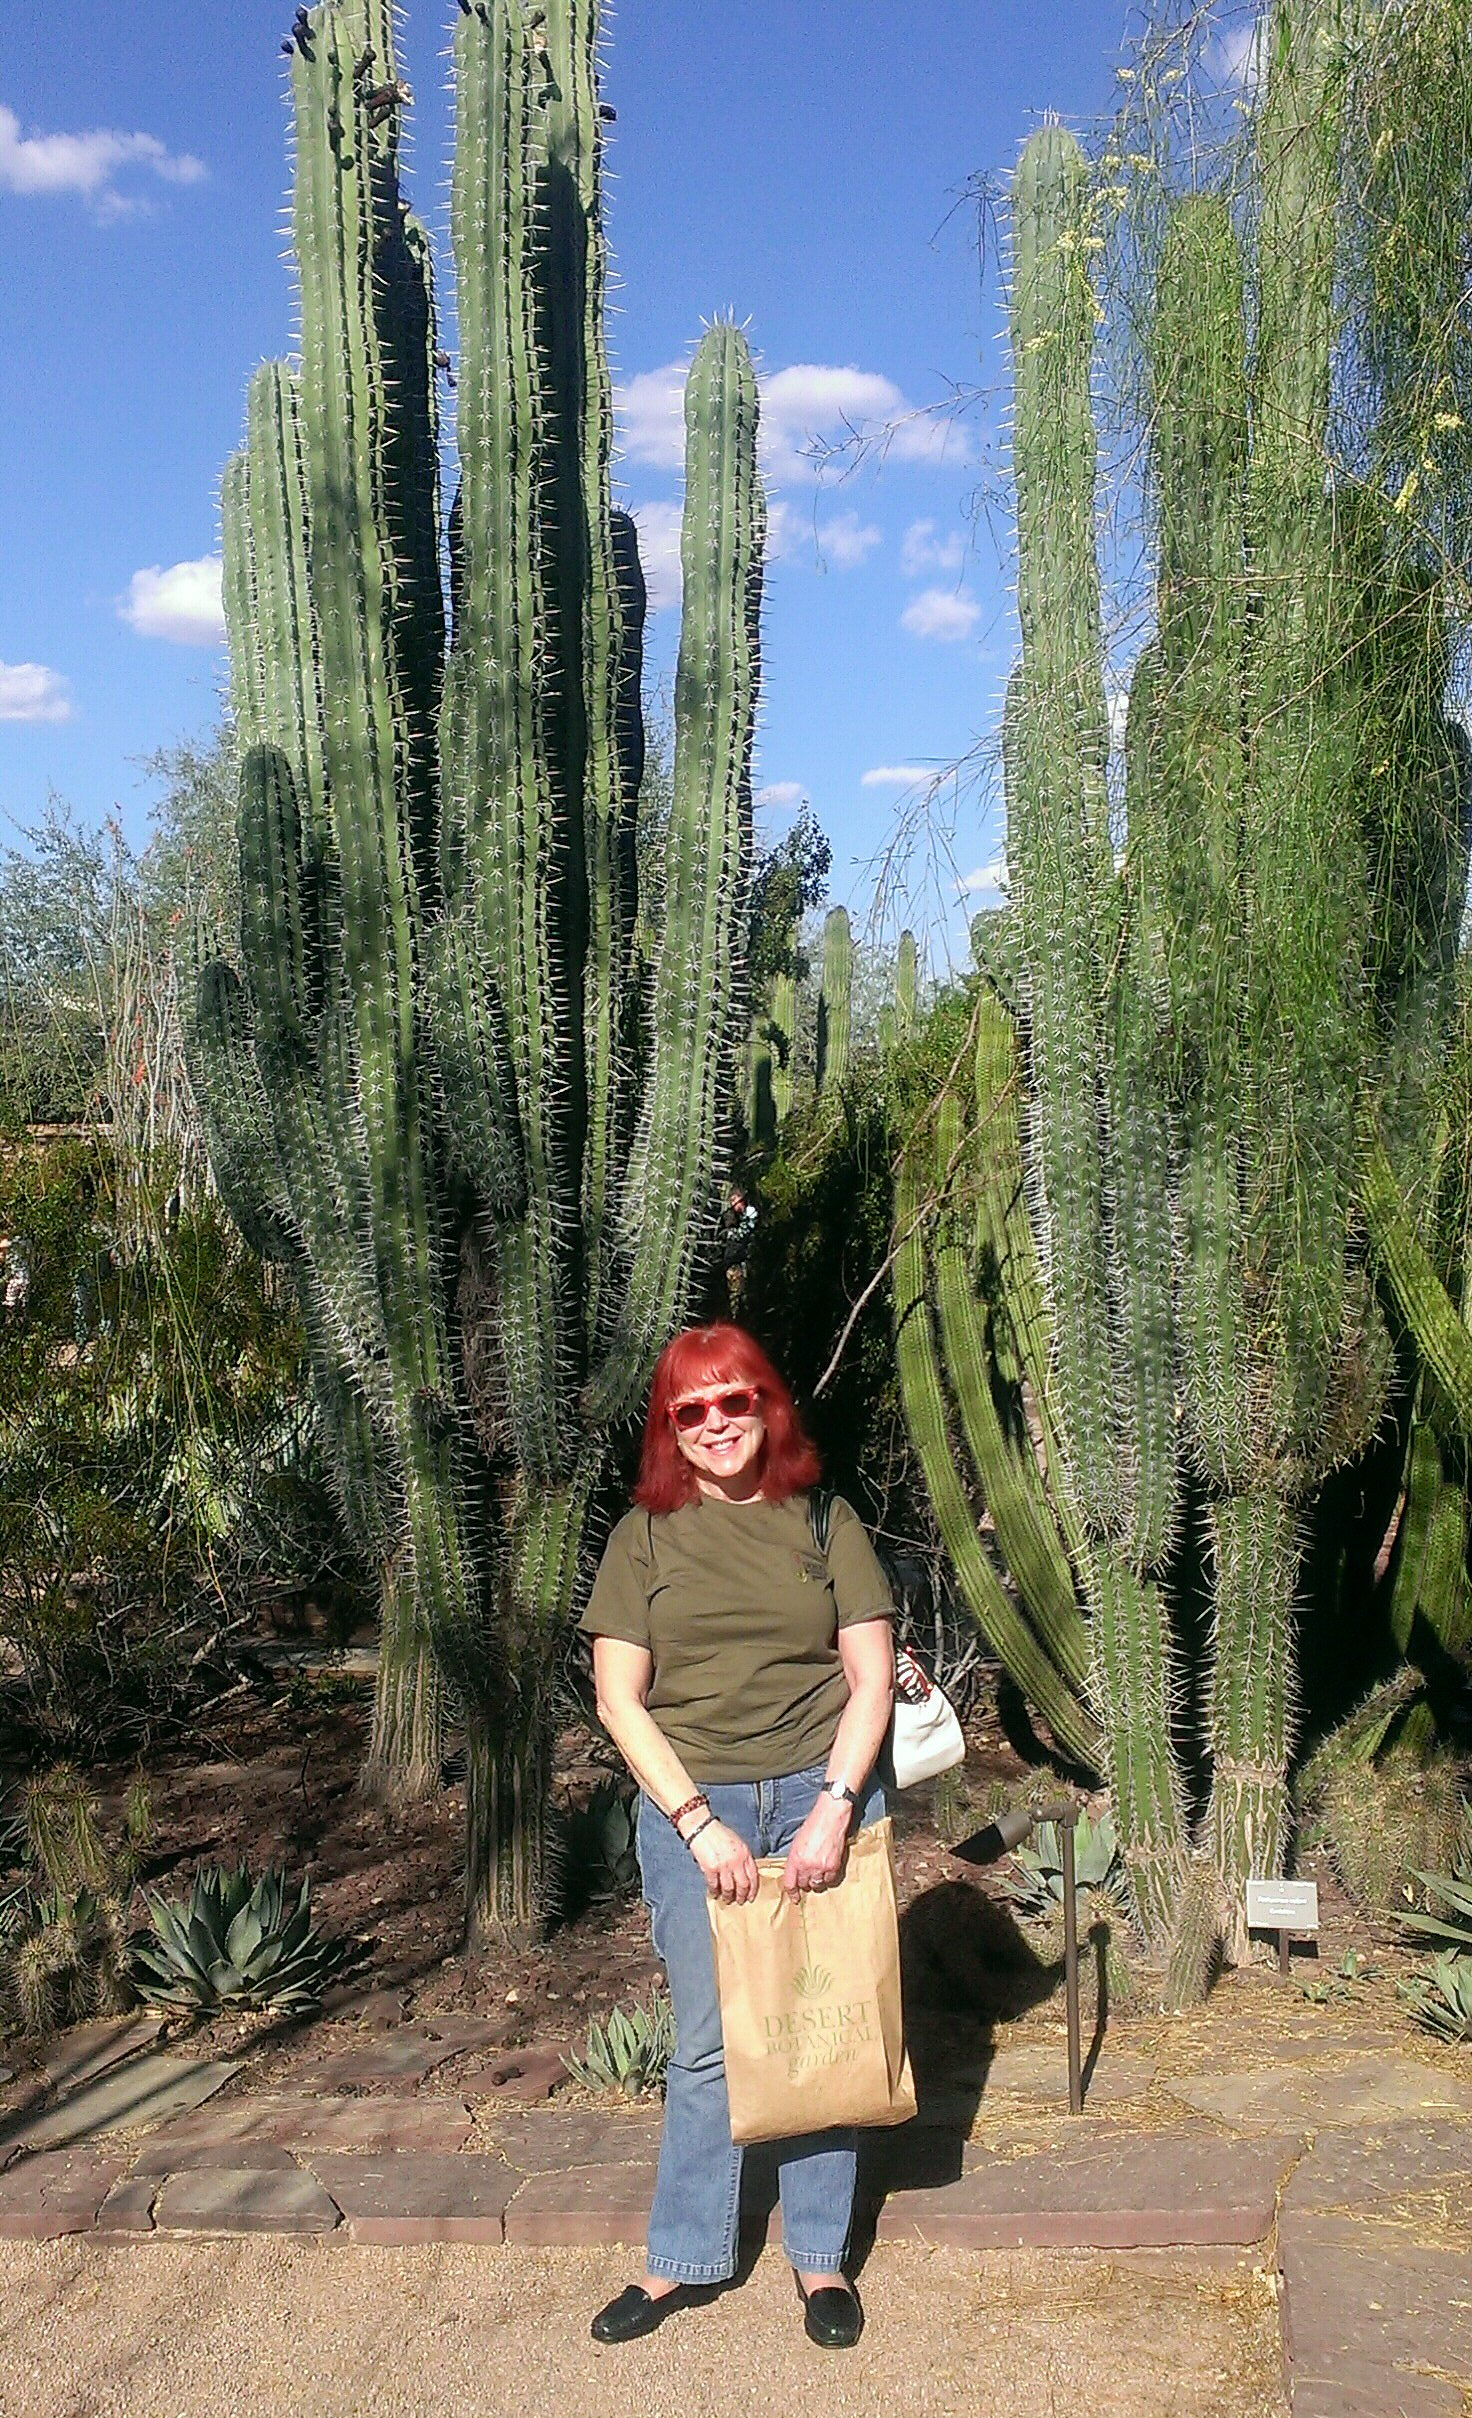 me at Desert Botanical Gardens in front of tall cacti neversaydiebeauty.com